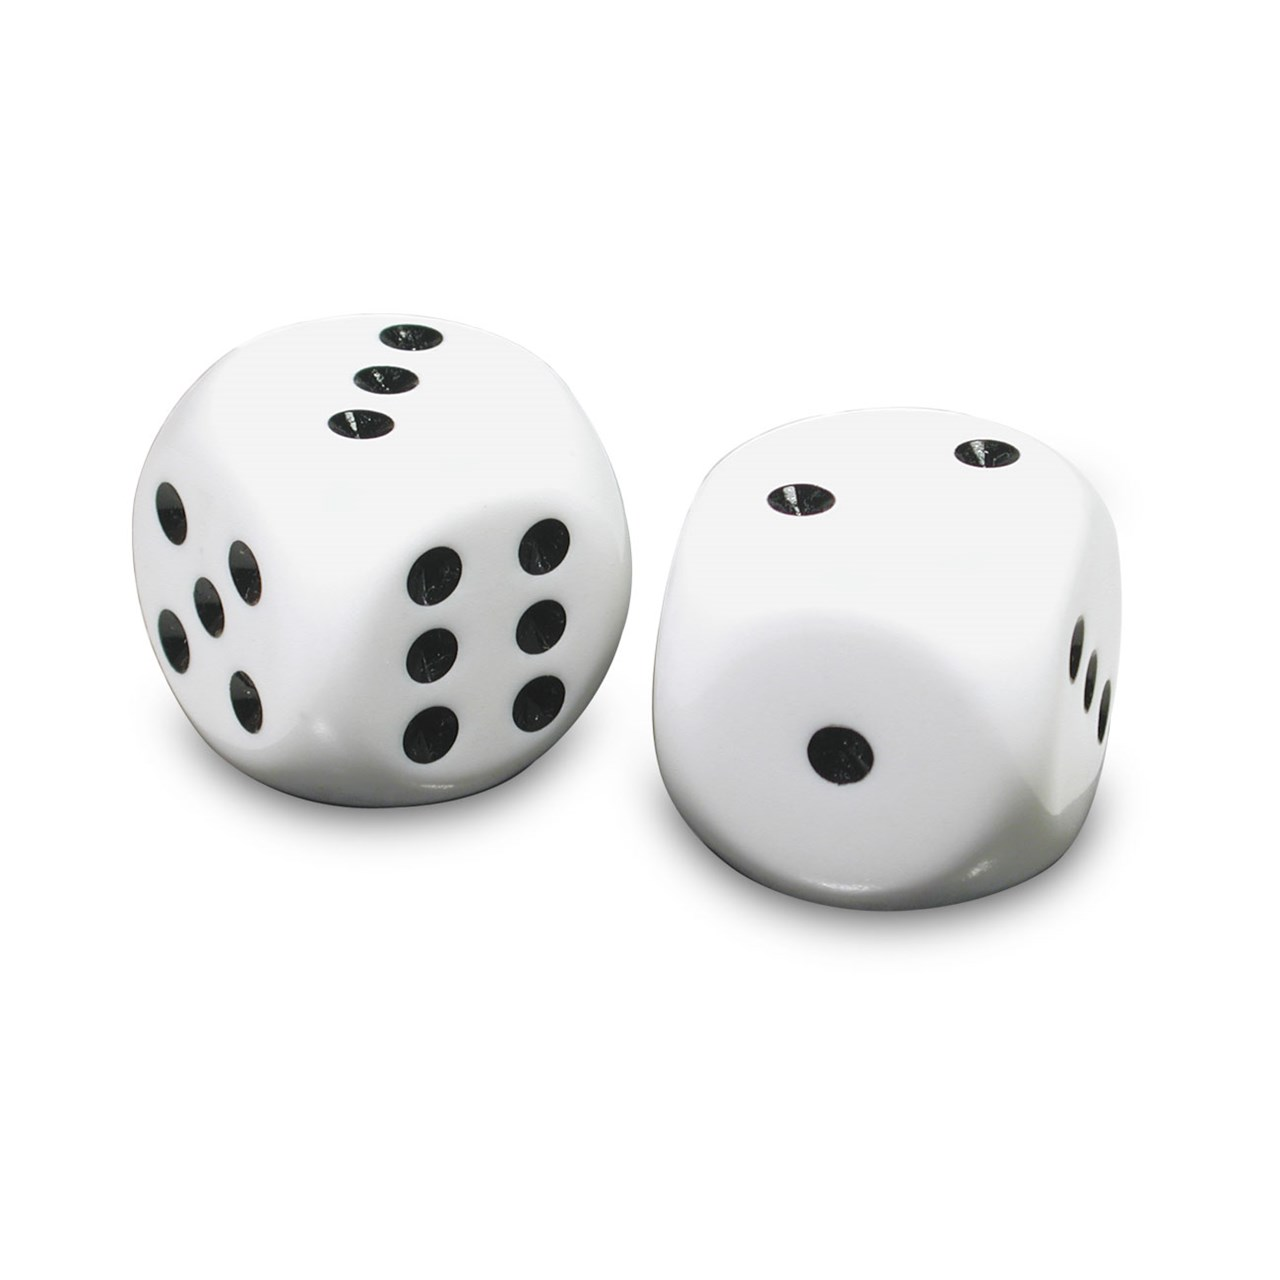 Maxiaids Low Vision Large Dice